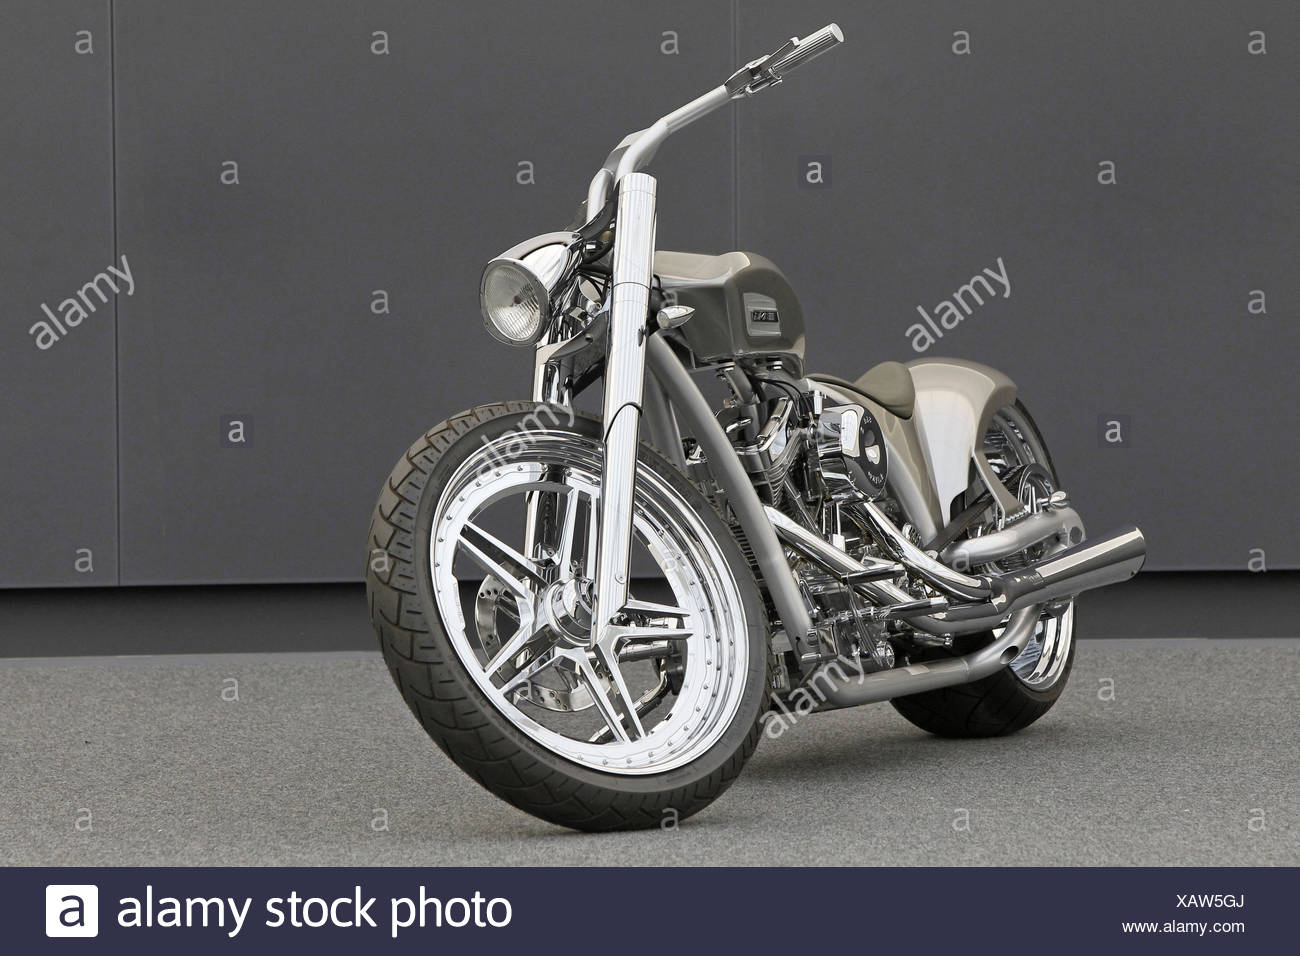 Motorcycle, chopper AMG, diagonal, tilted front view, silver, design motorcycle, - Stock Image